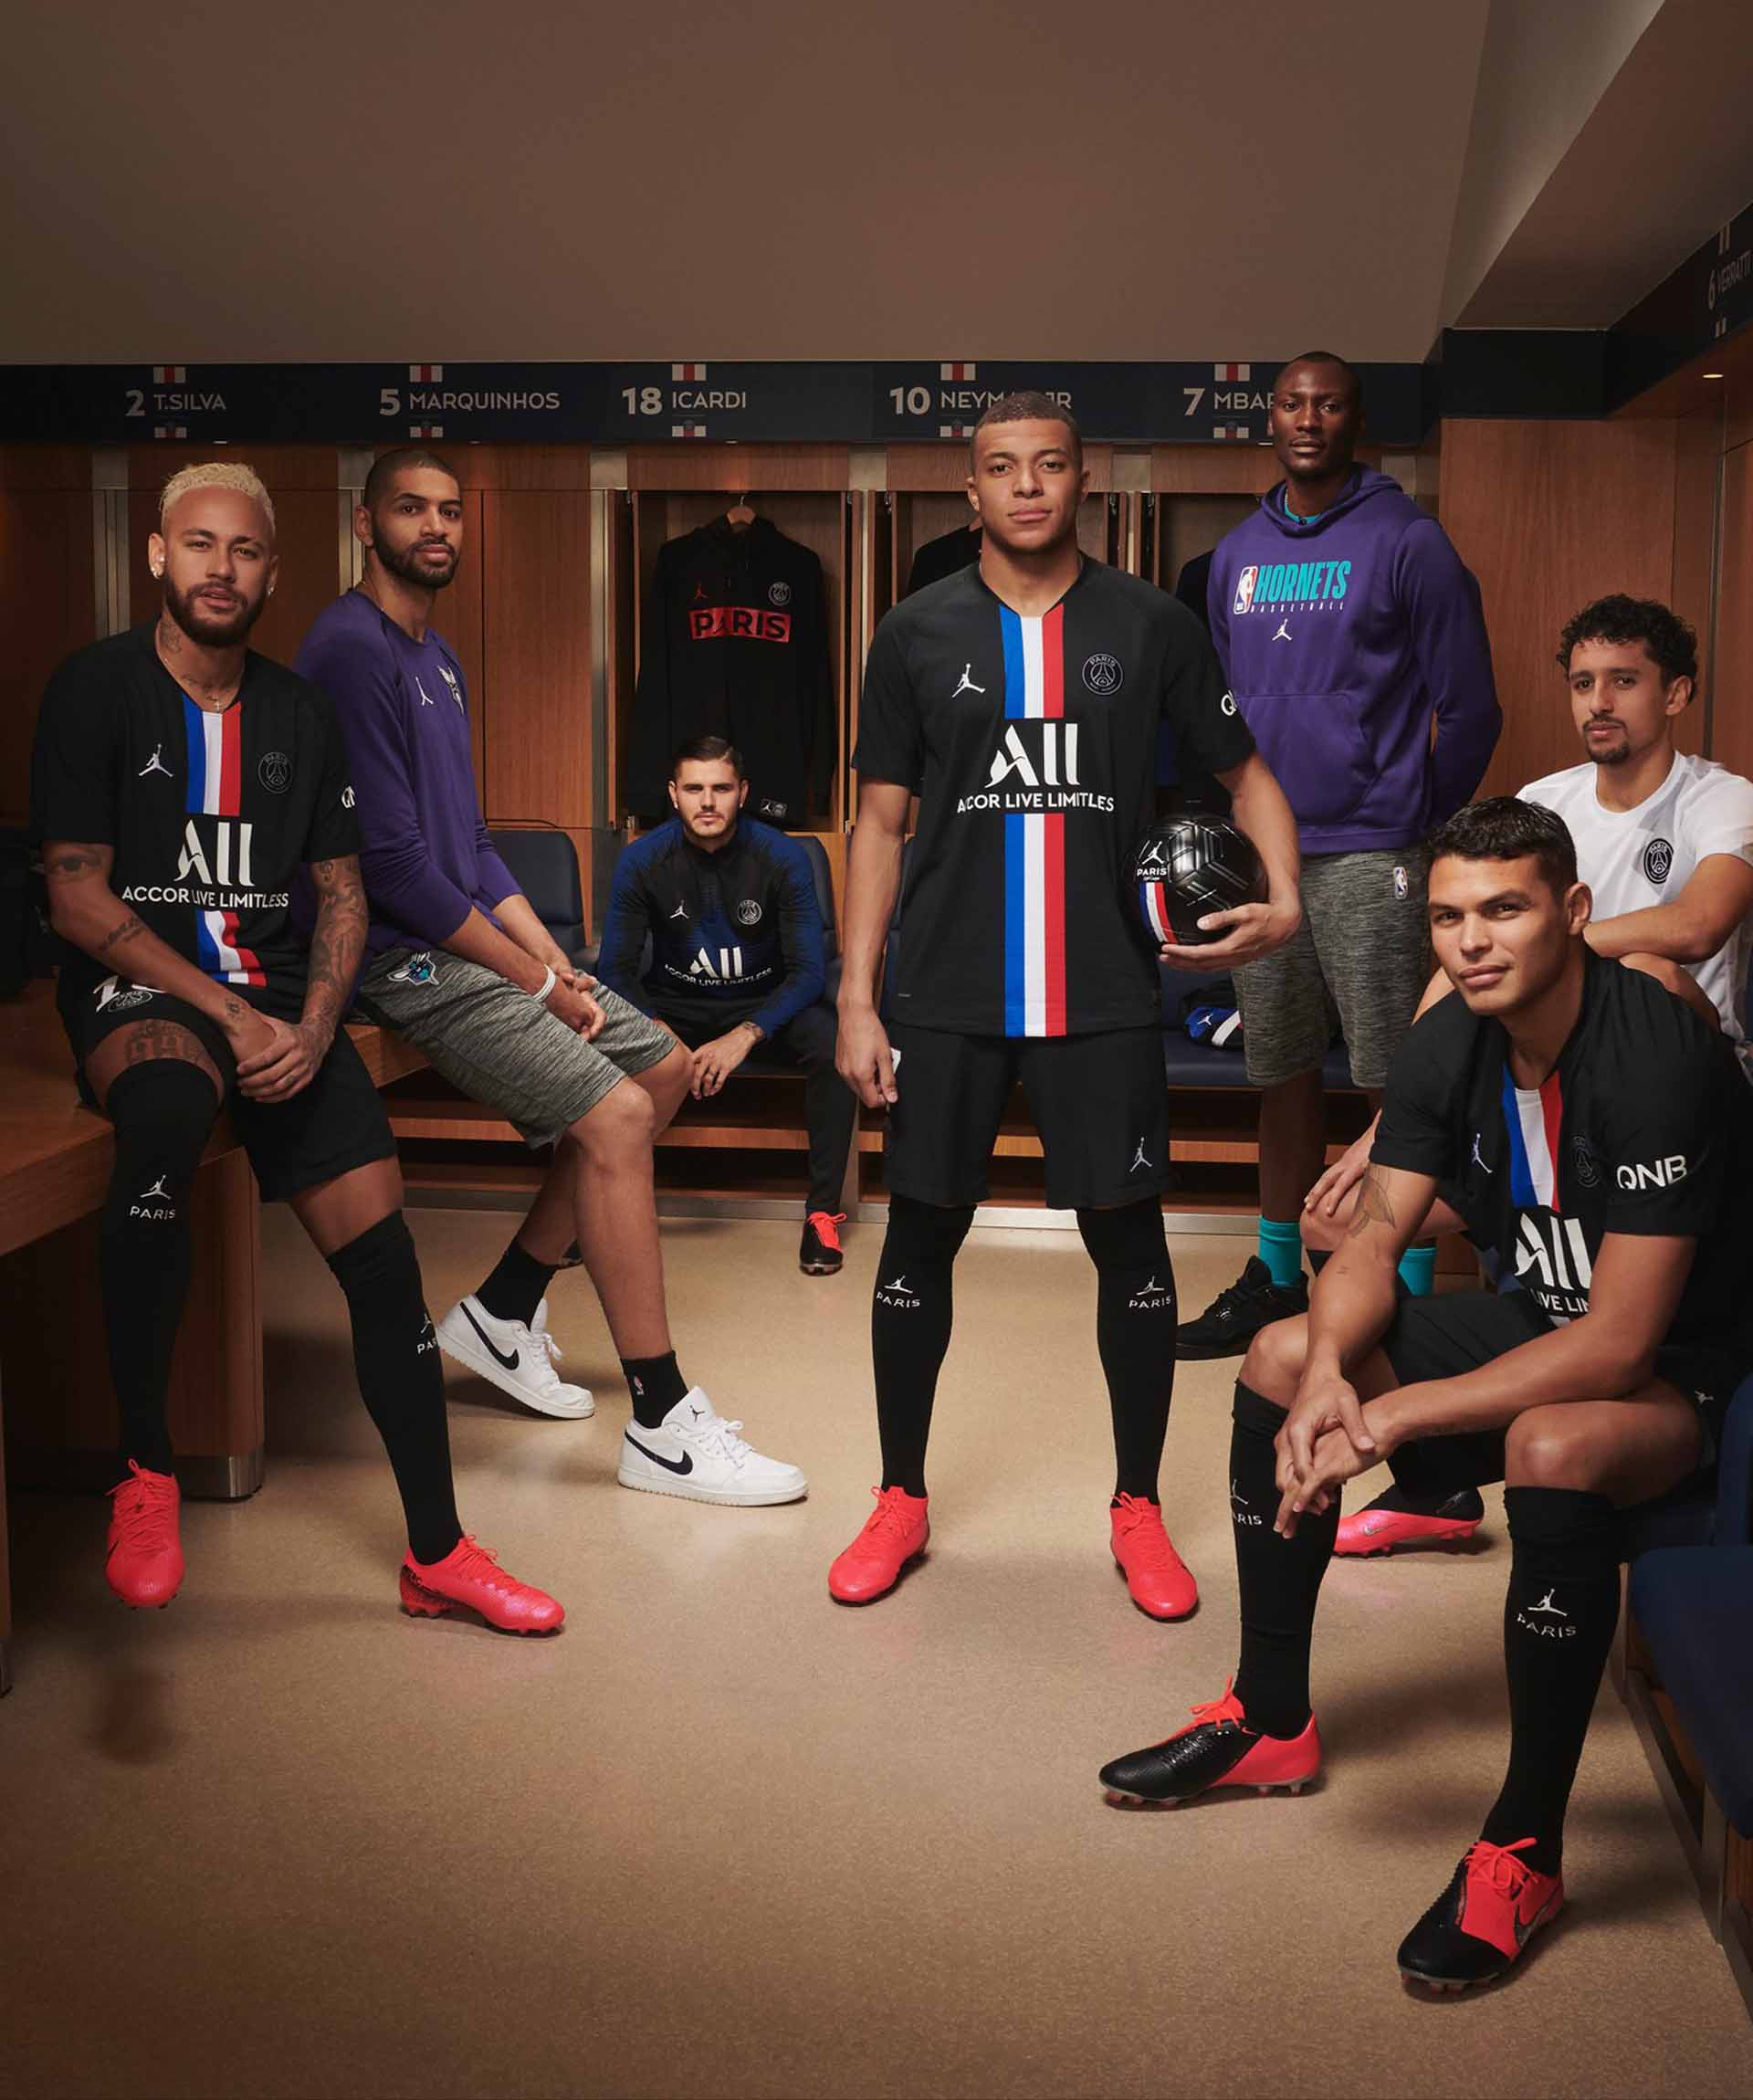 PSG and NBA star pose with the new kit (Image credit: Google)